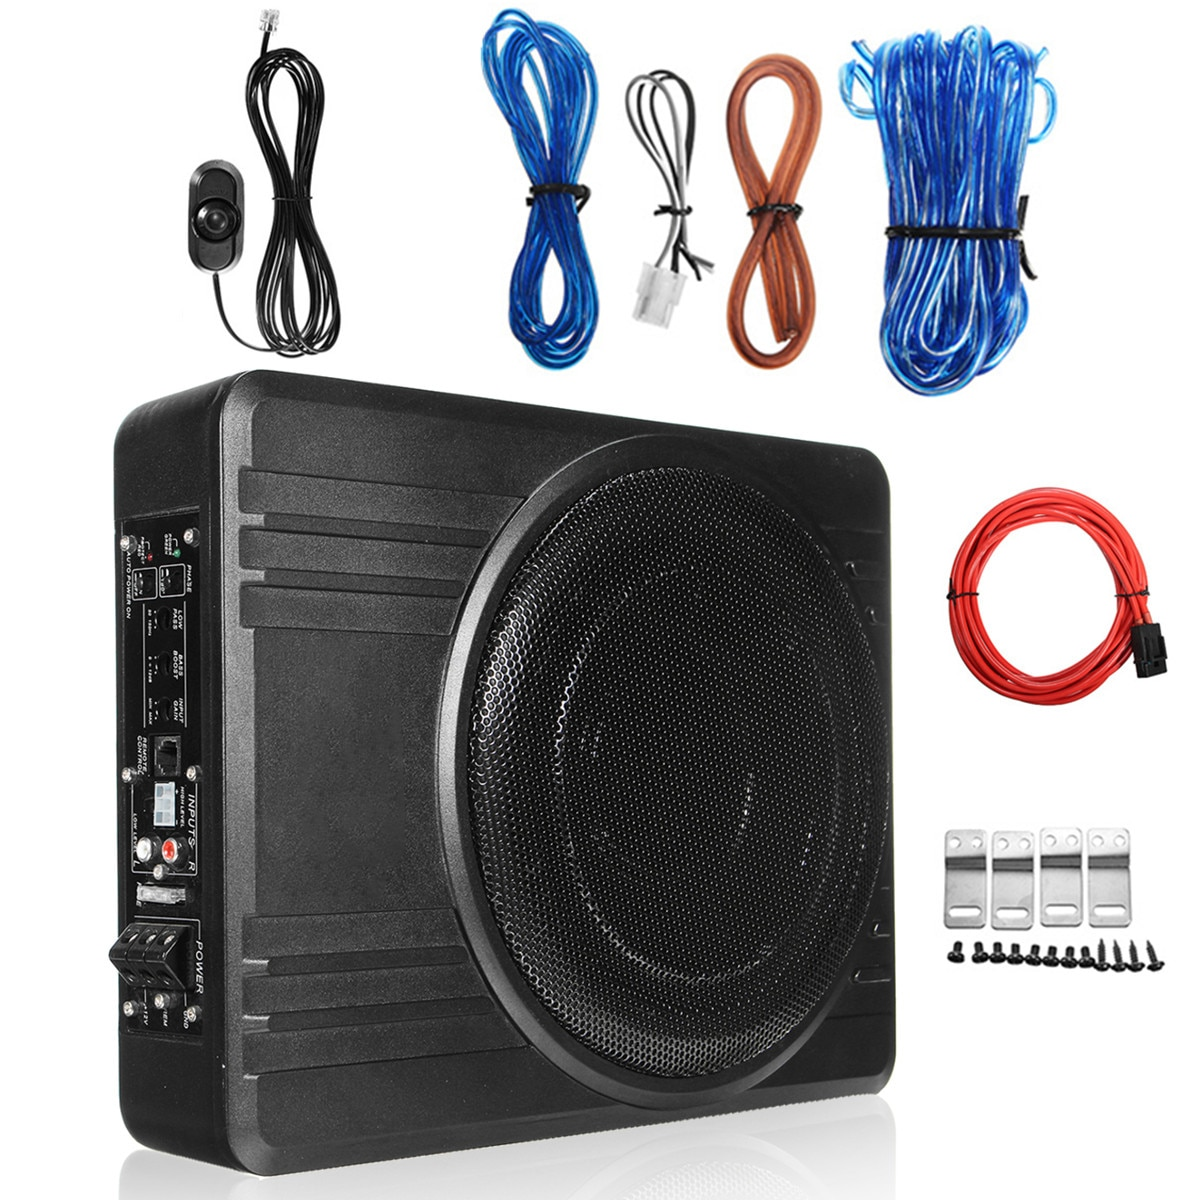 600W 10 Inch Car Amplifier Subwoofer Car Audio Slim Under Seat Active Subwoofer Bass Speaker Car Subwoofers Woofer 10 600w active car subwoofer audio speakers amplifier ultra thin subwoofer bass amplifier auto surround sound car audio system